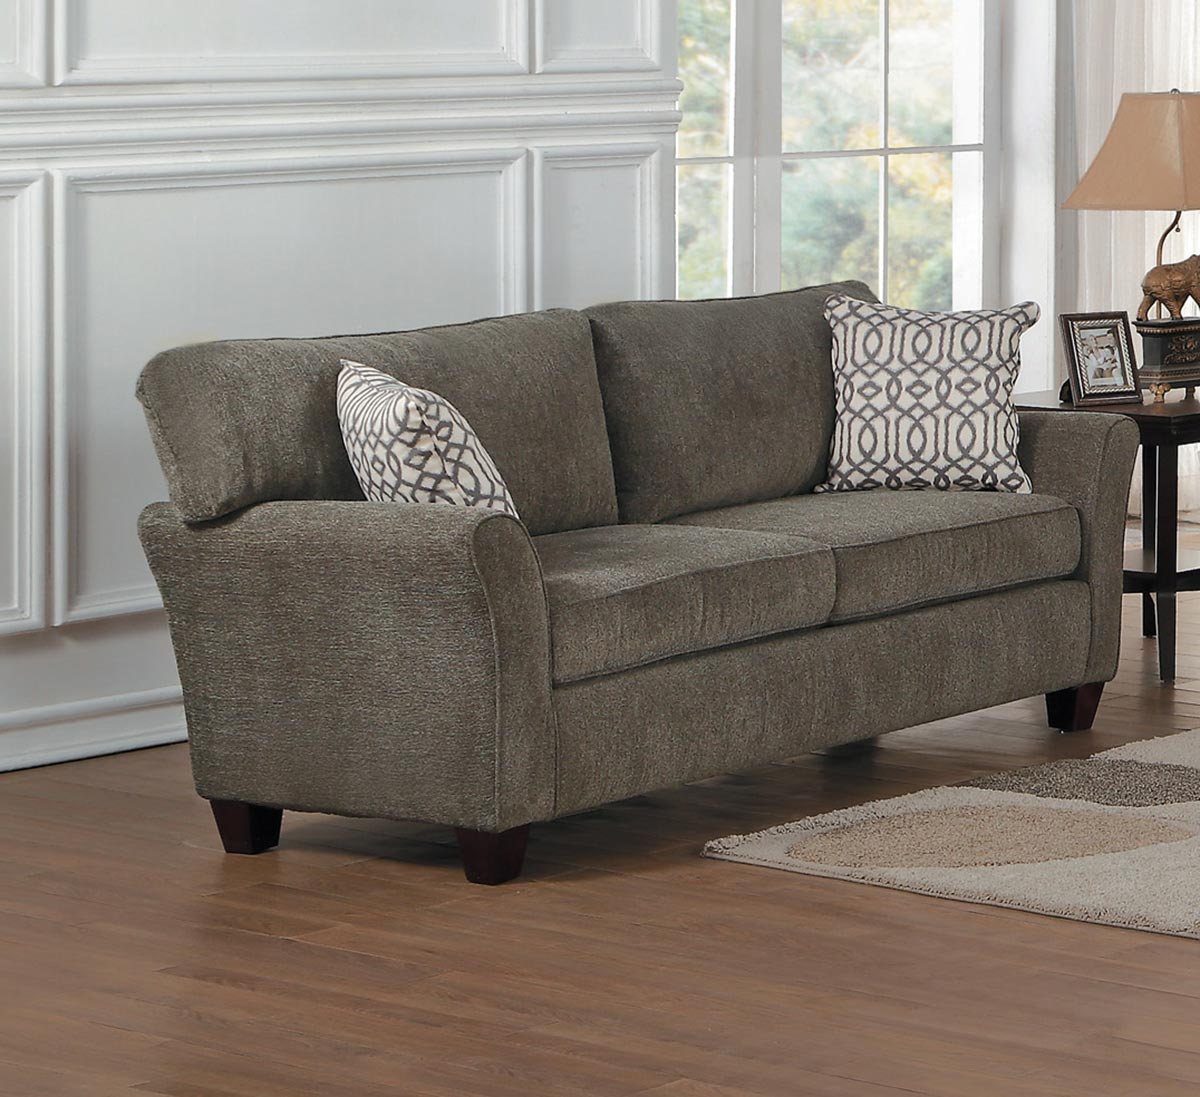 Homelegance Alain Love Seat - Gray Fabric